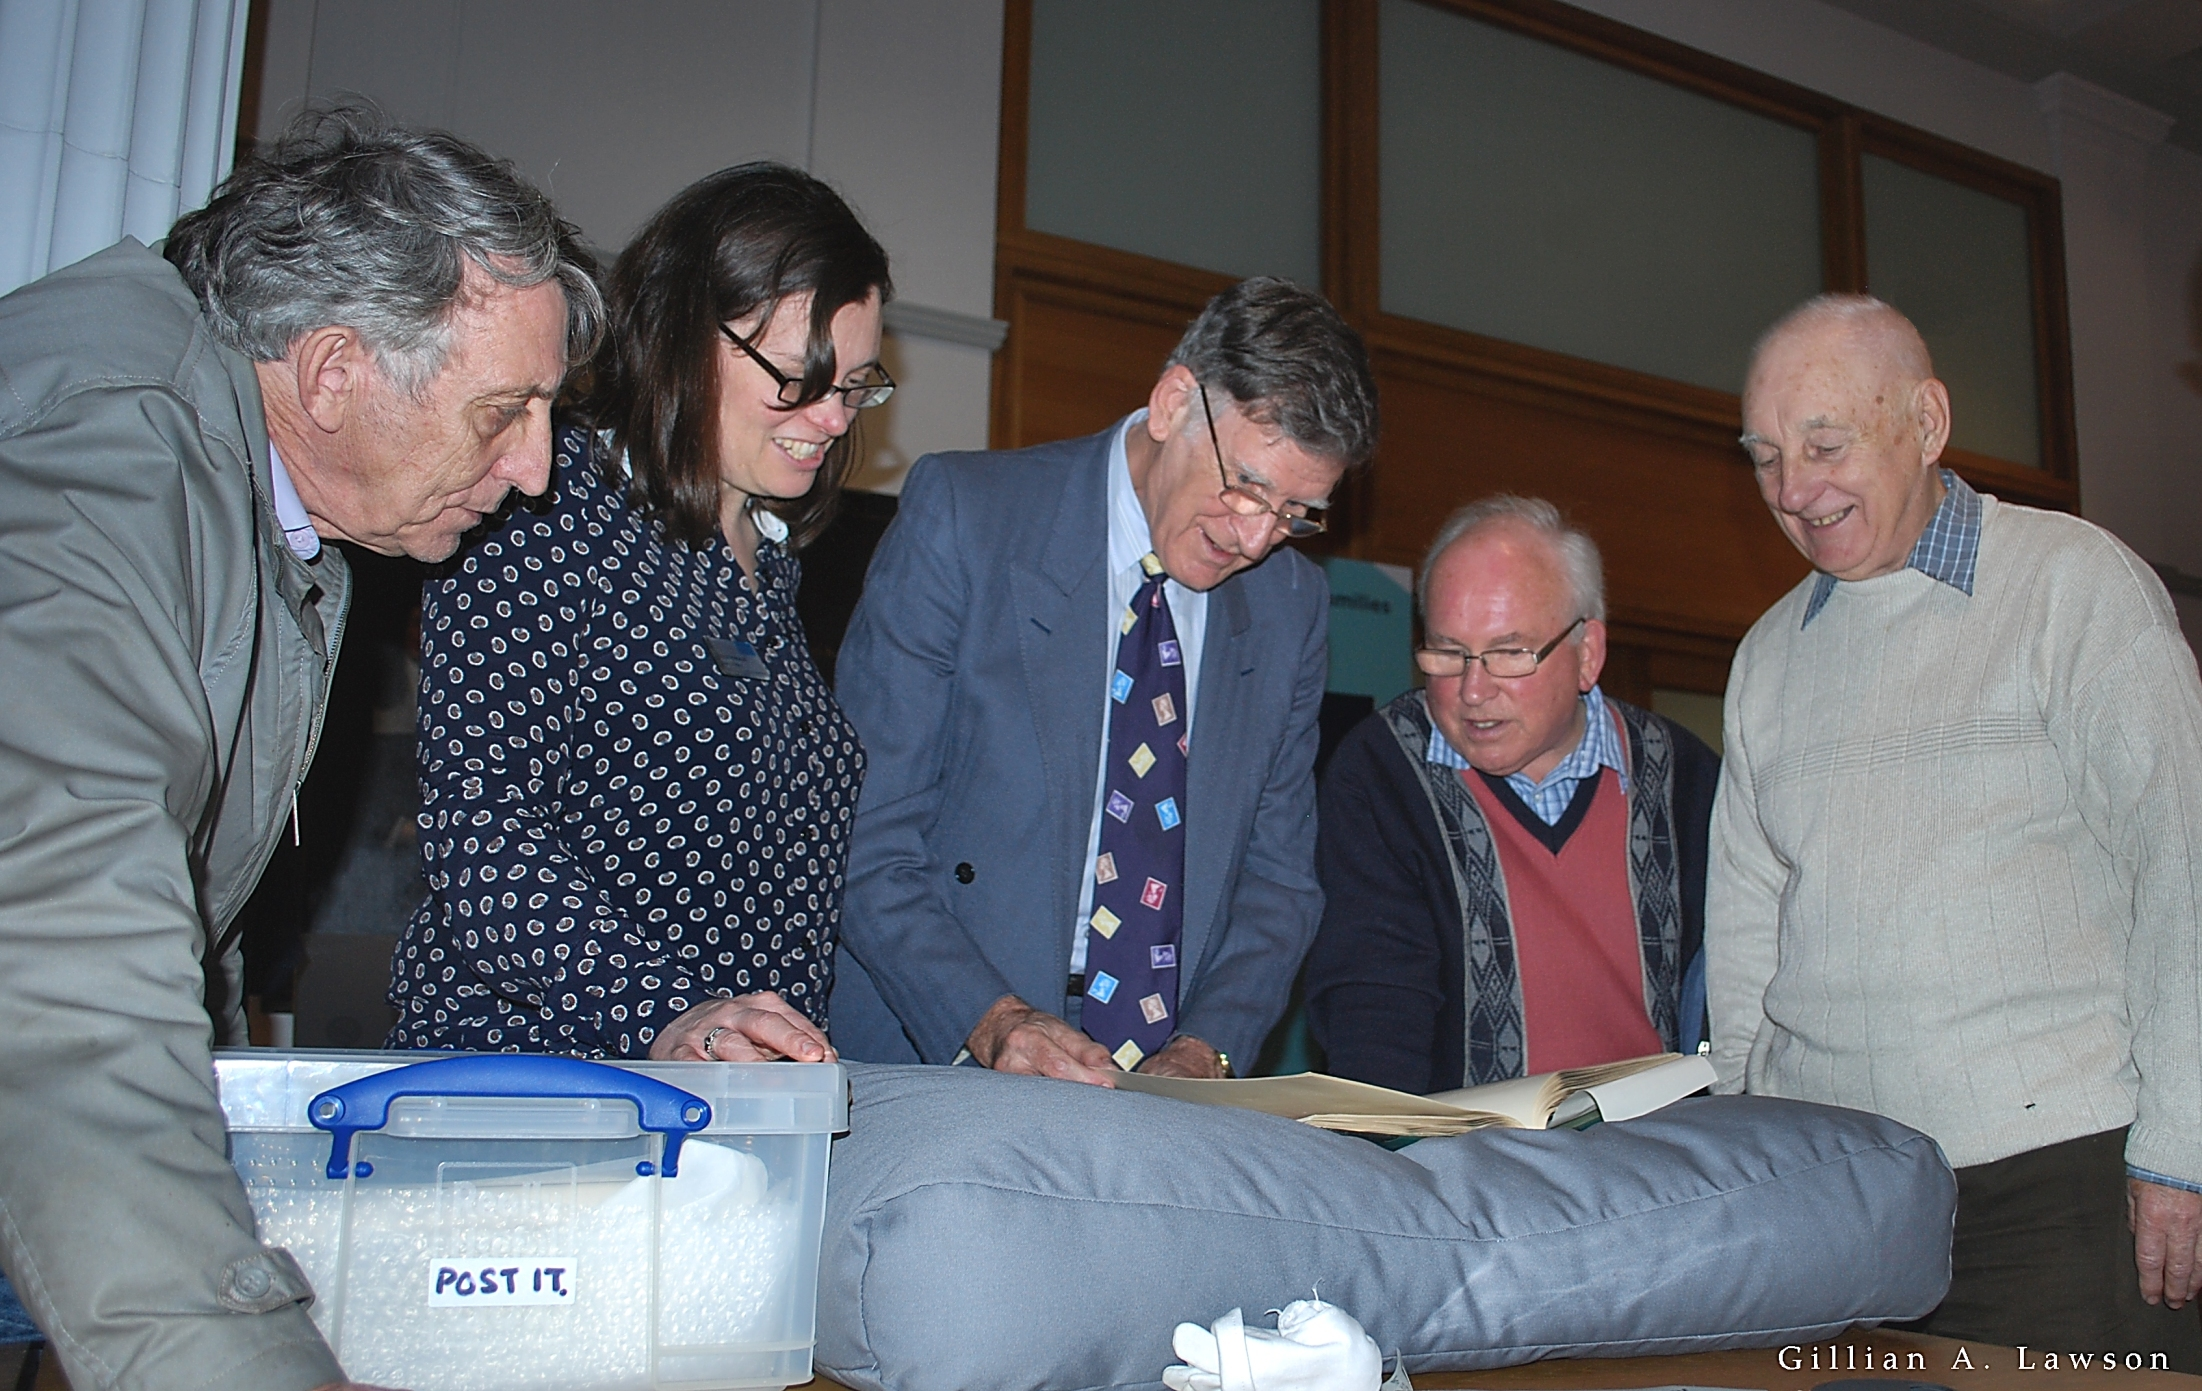 Paul Gaywood, Emma Heslewood & Members Of The Philatelic Society